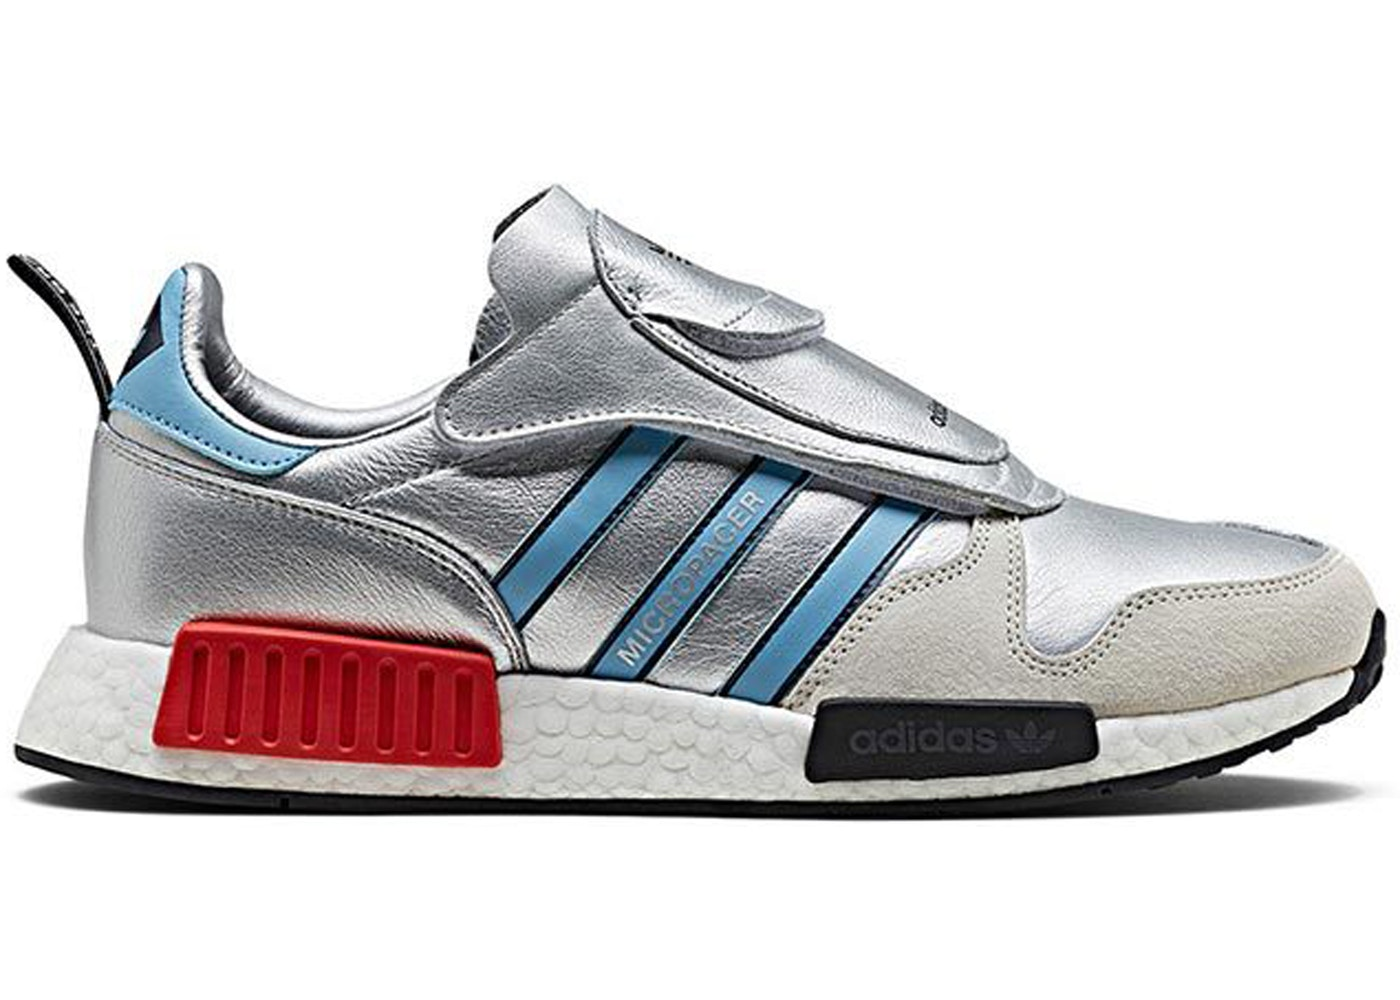 アディダス ADIDAS スニーカー 【 MICROPACER X R1 NEVER MADE PACK SILVER METALLIC LIGHT BLUE FOOTWEAR WHITE 】 メンズ